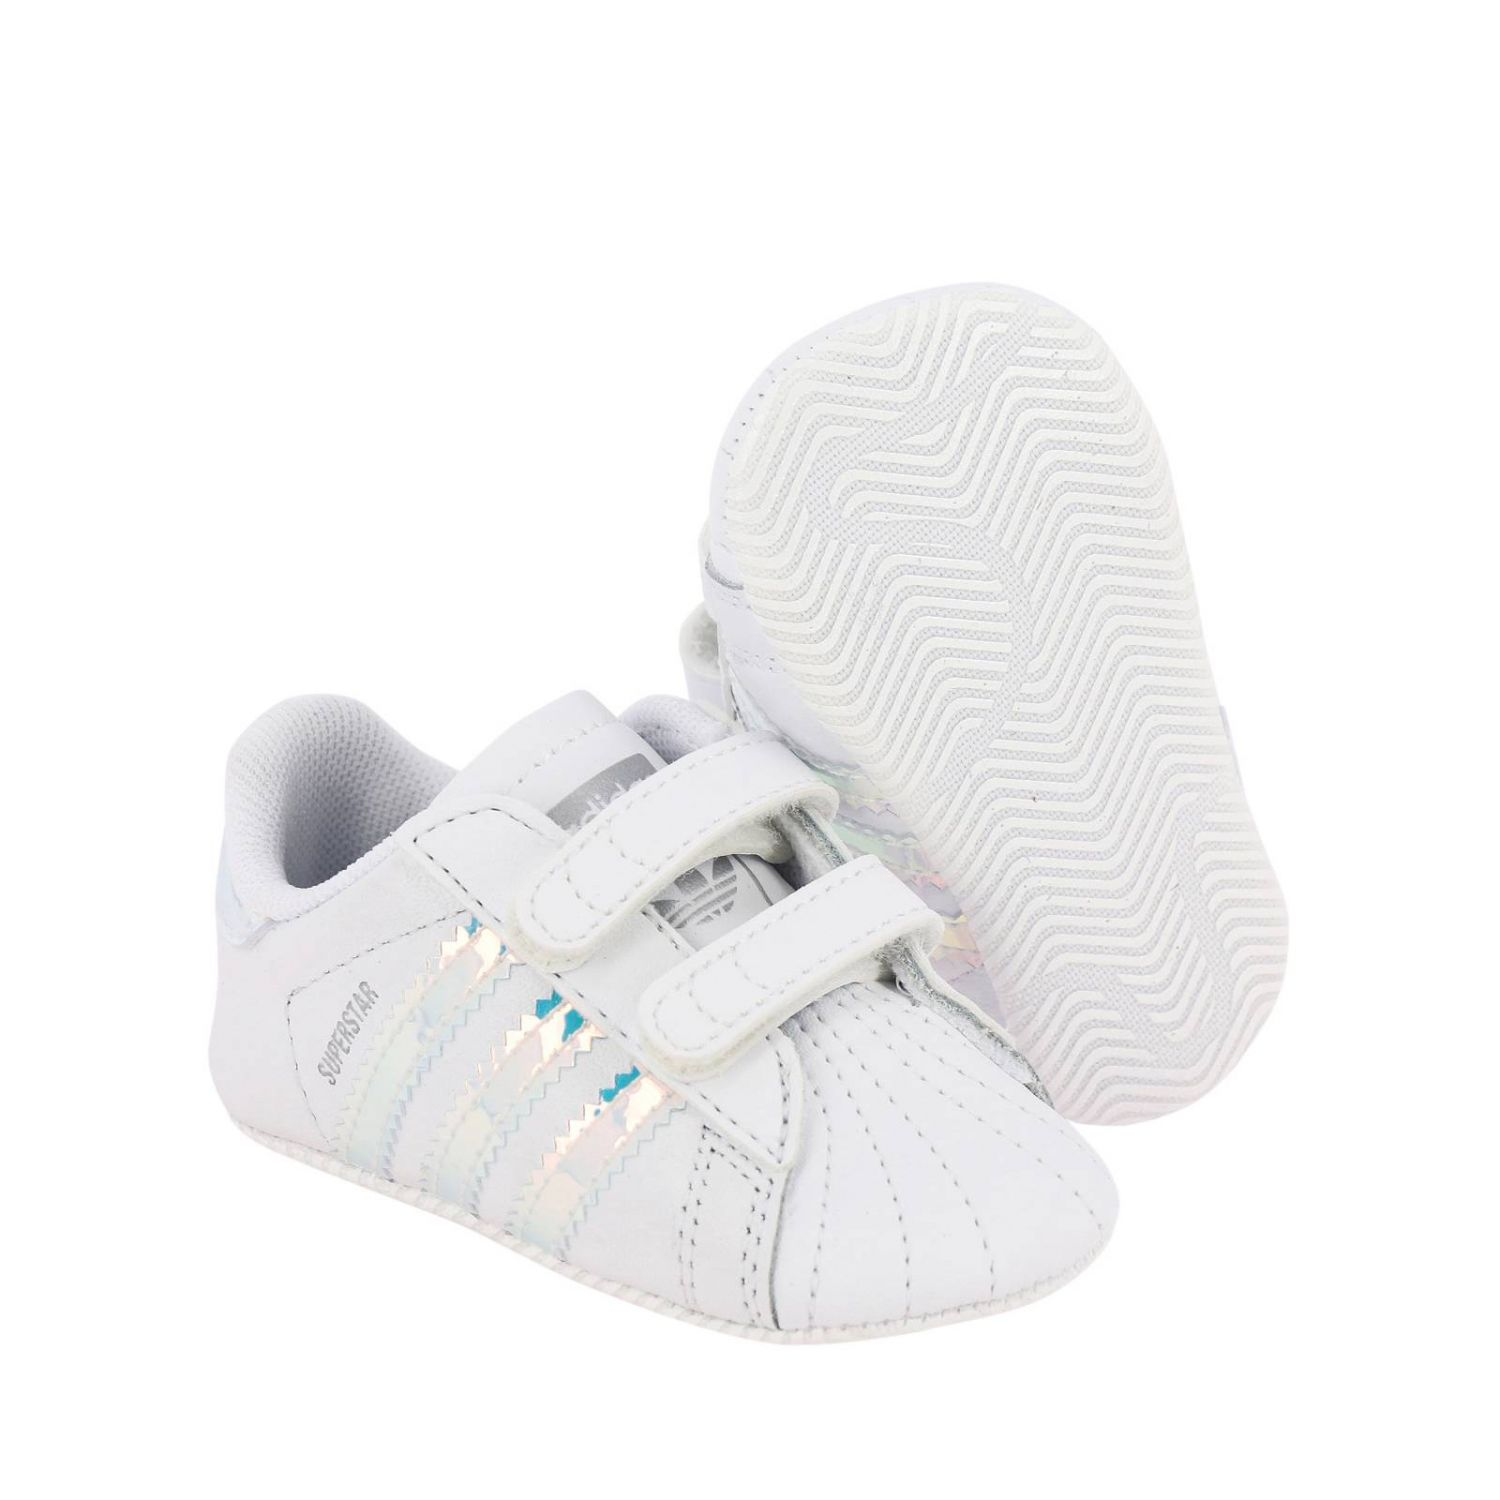 Superstar Crib Adidas Originals sneakers in leather with mirrored trim white 2